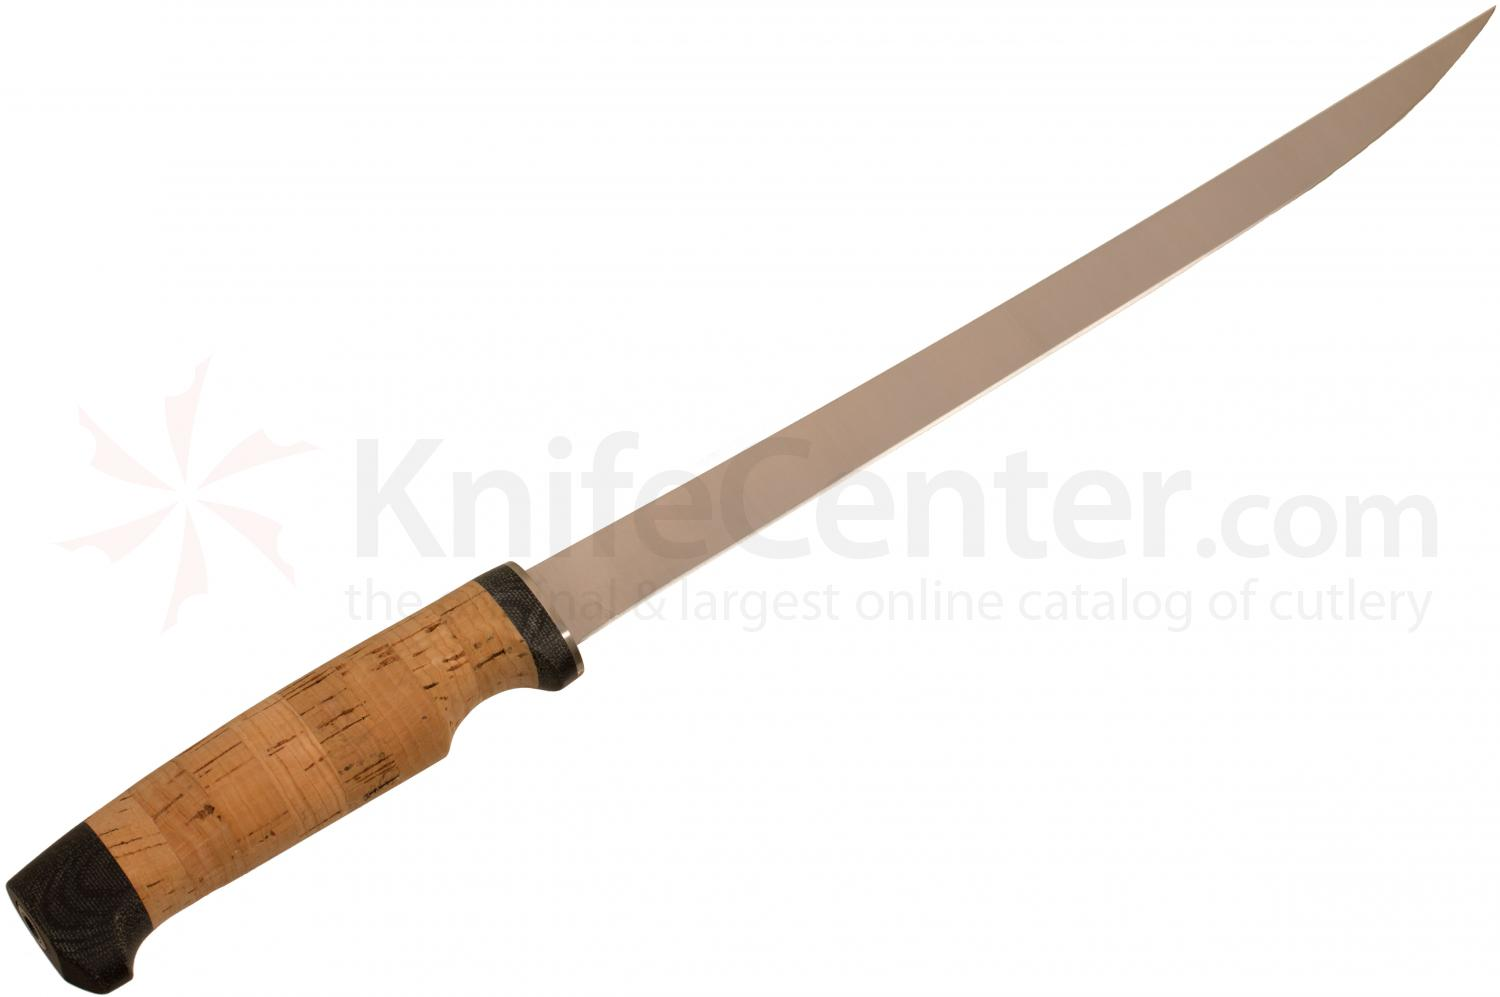 White River Knives Fillet Knife 11 inch 440C Flexible Blade, Cork Handle, Leather Sheath